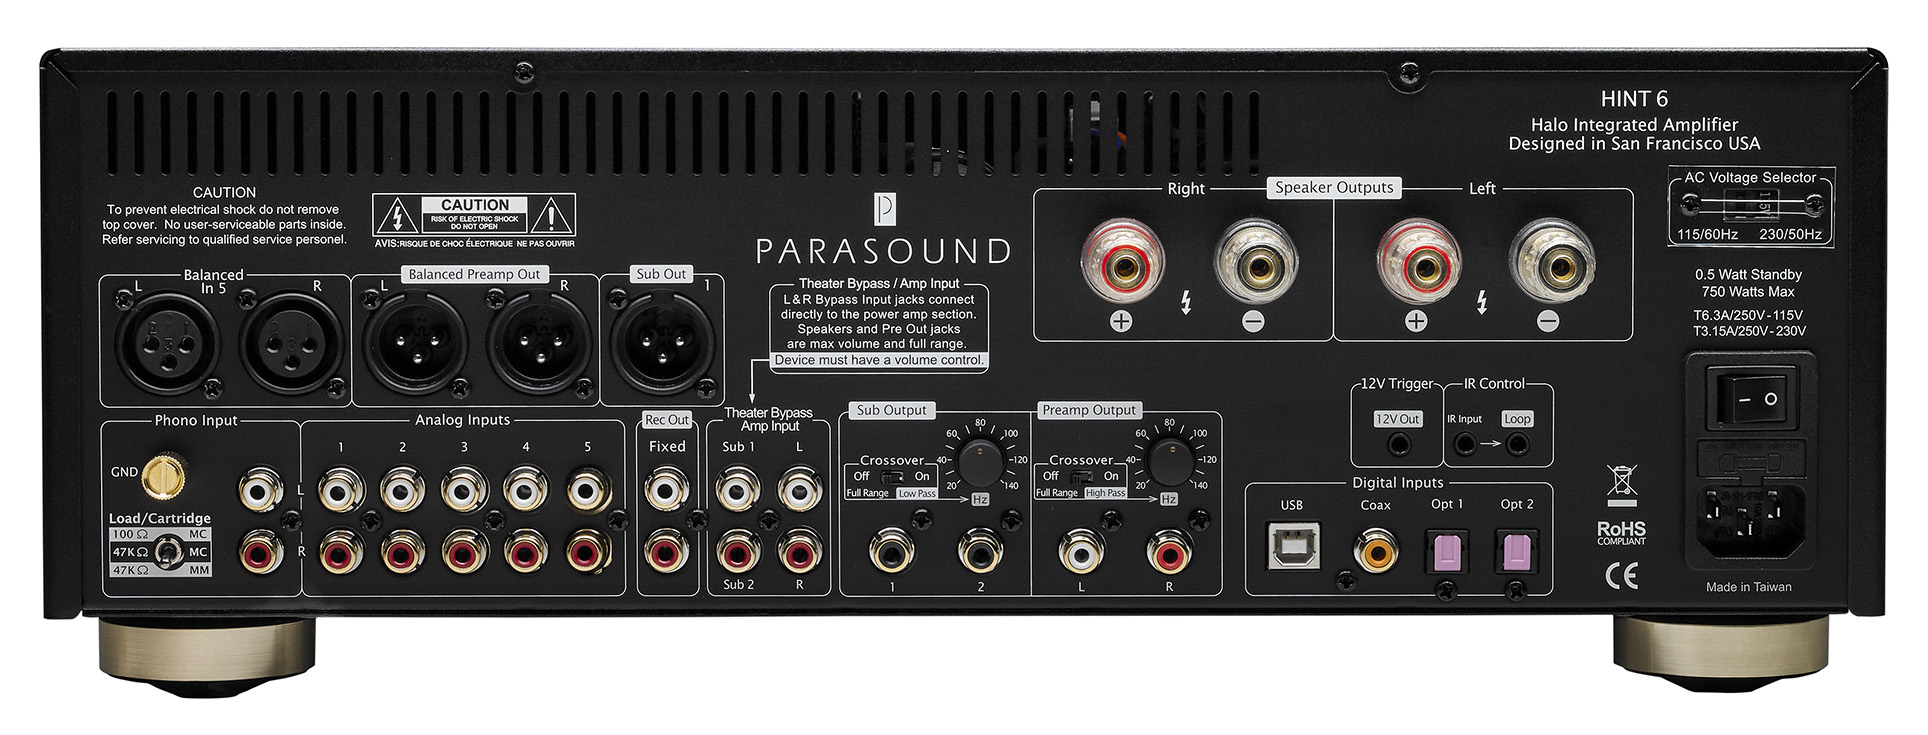 Model Hint 6 Halo Integrated Amplifier Parasound 32 Watt Ignore Hidden Image Used For Preloading Purposes